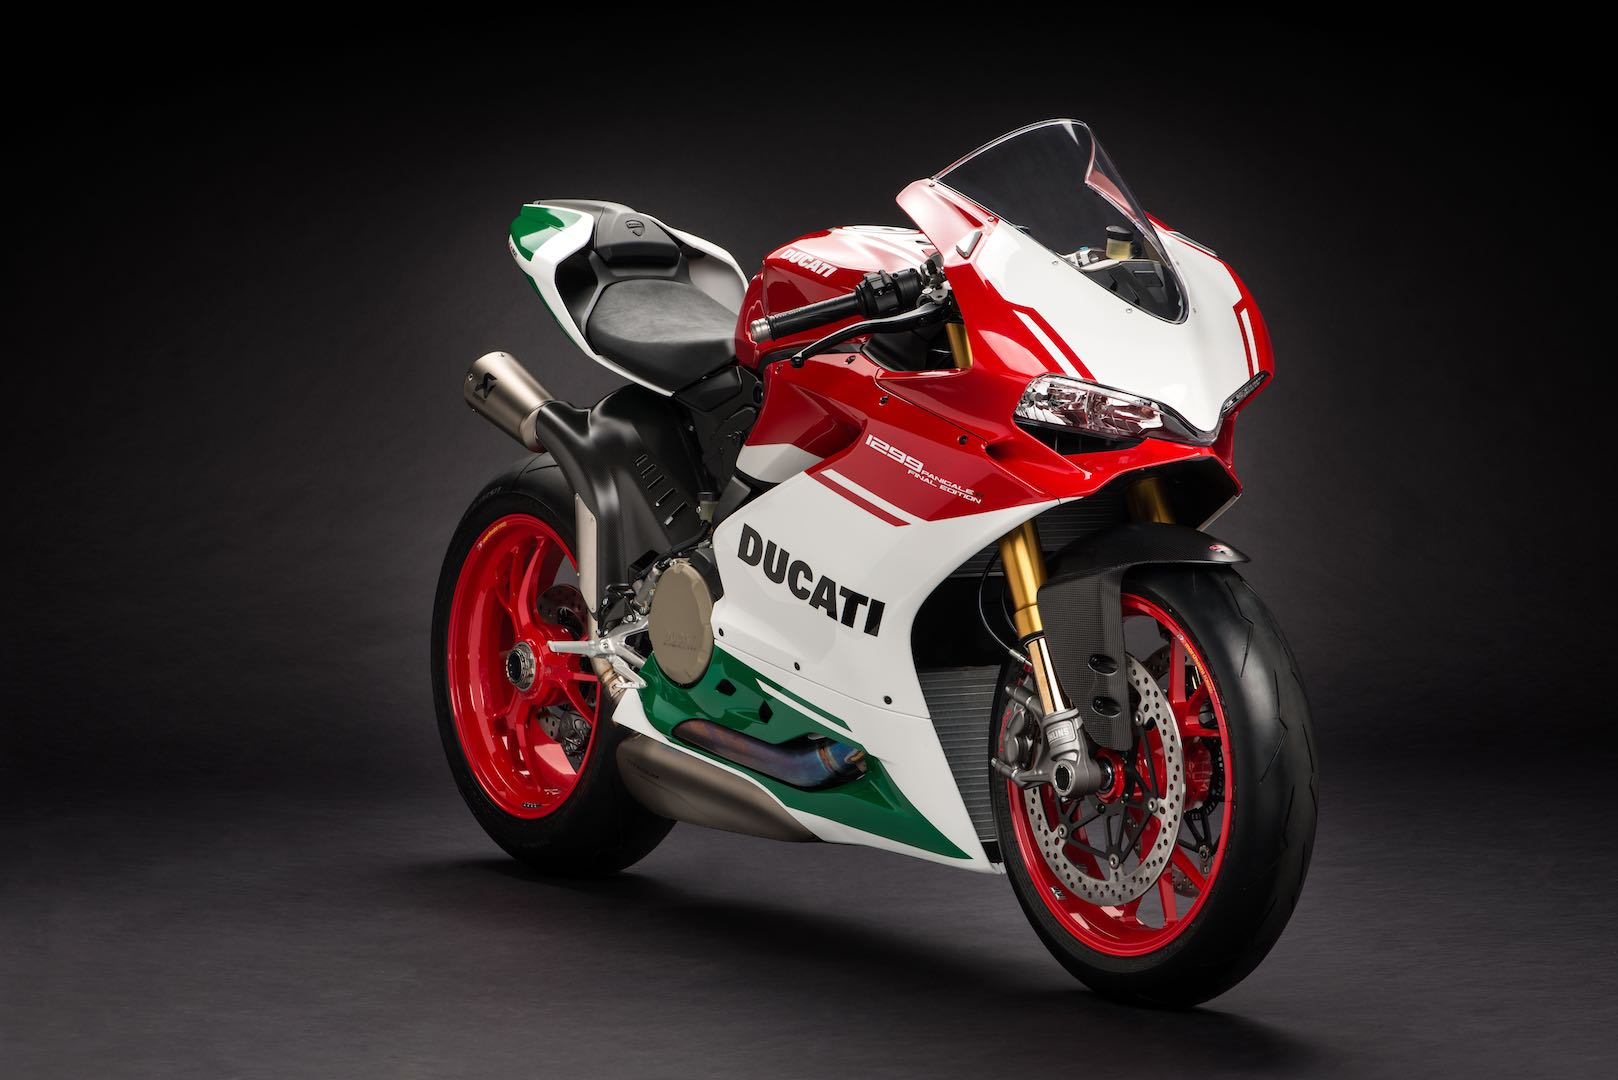 ducati 1299 panigale r final edition unveiled  making way